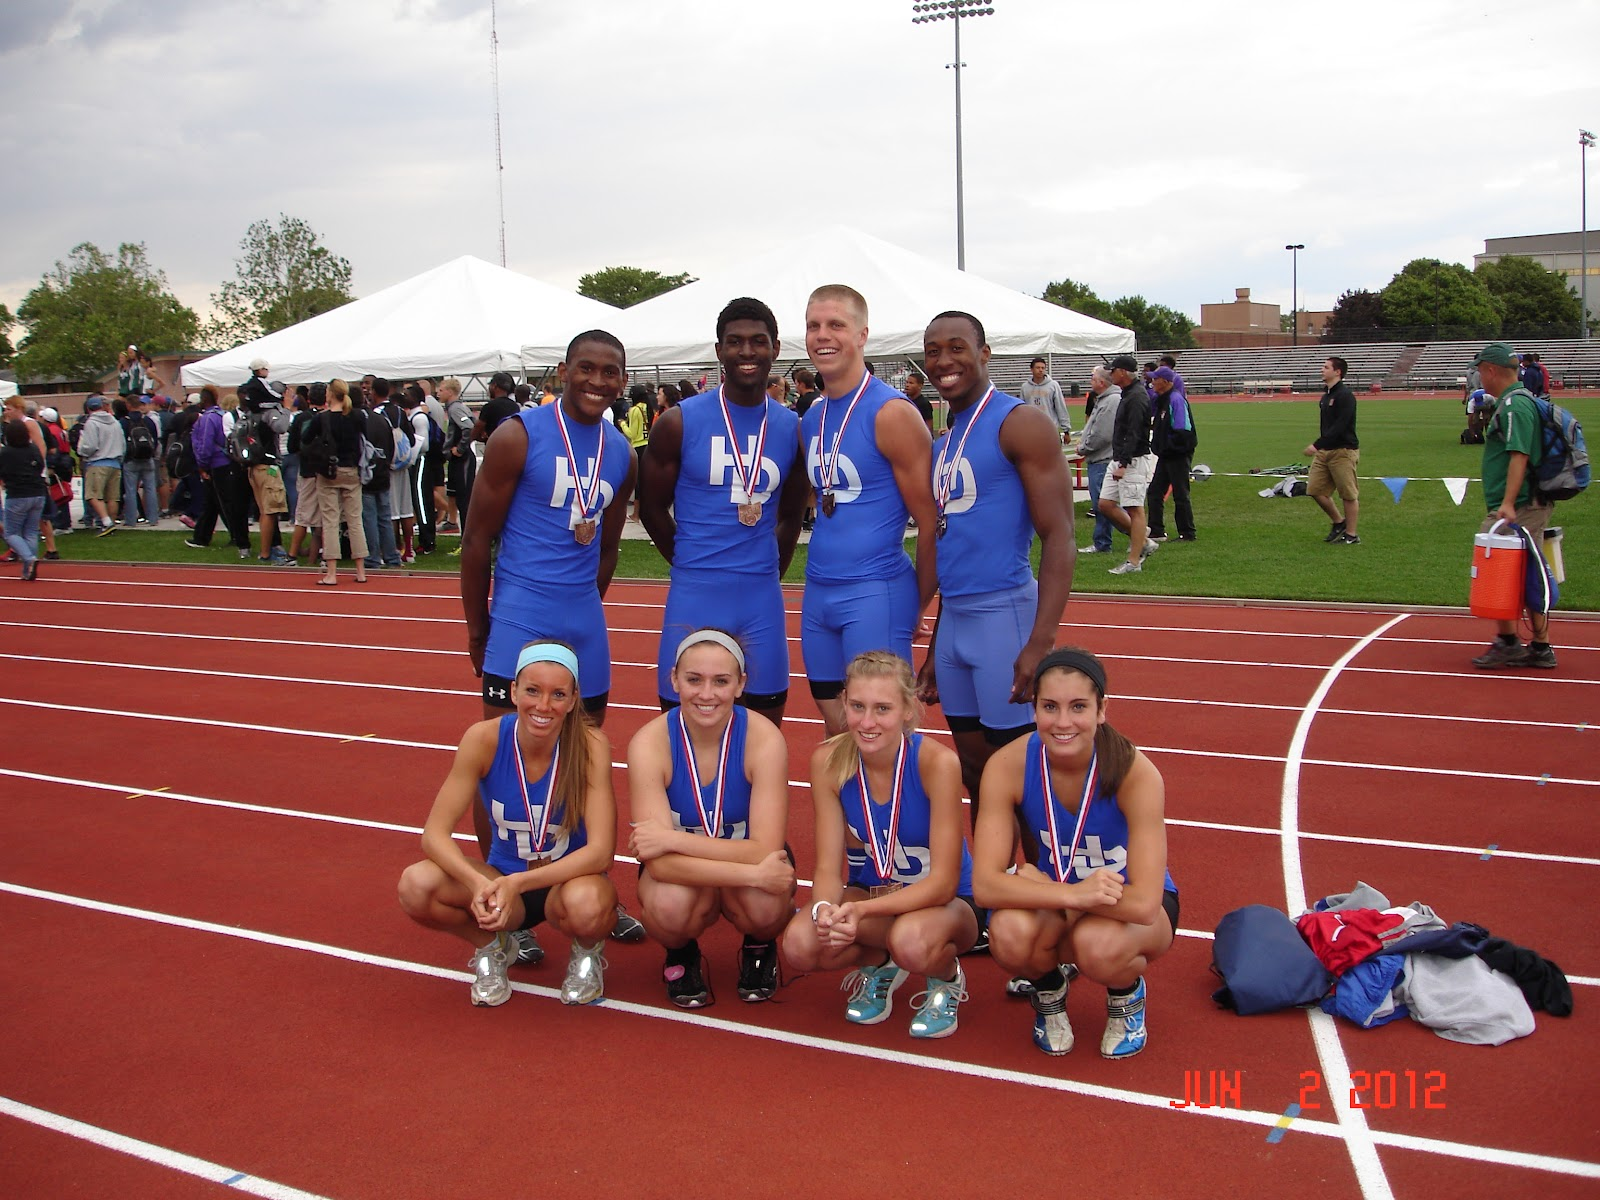 kent state track and field high school meet results